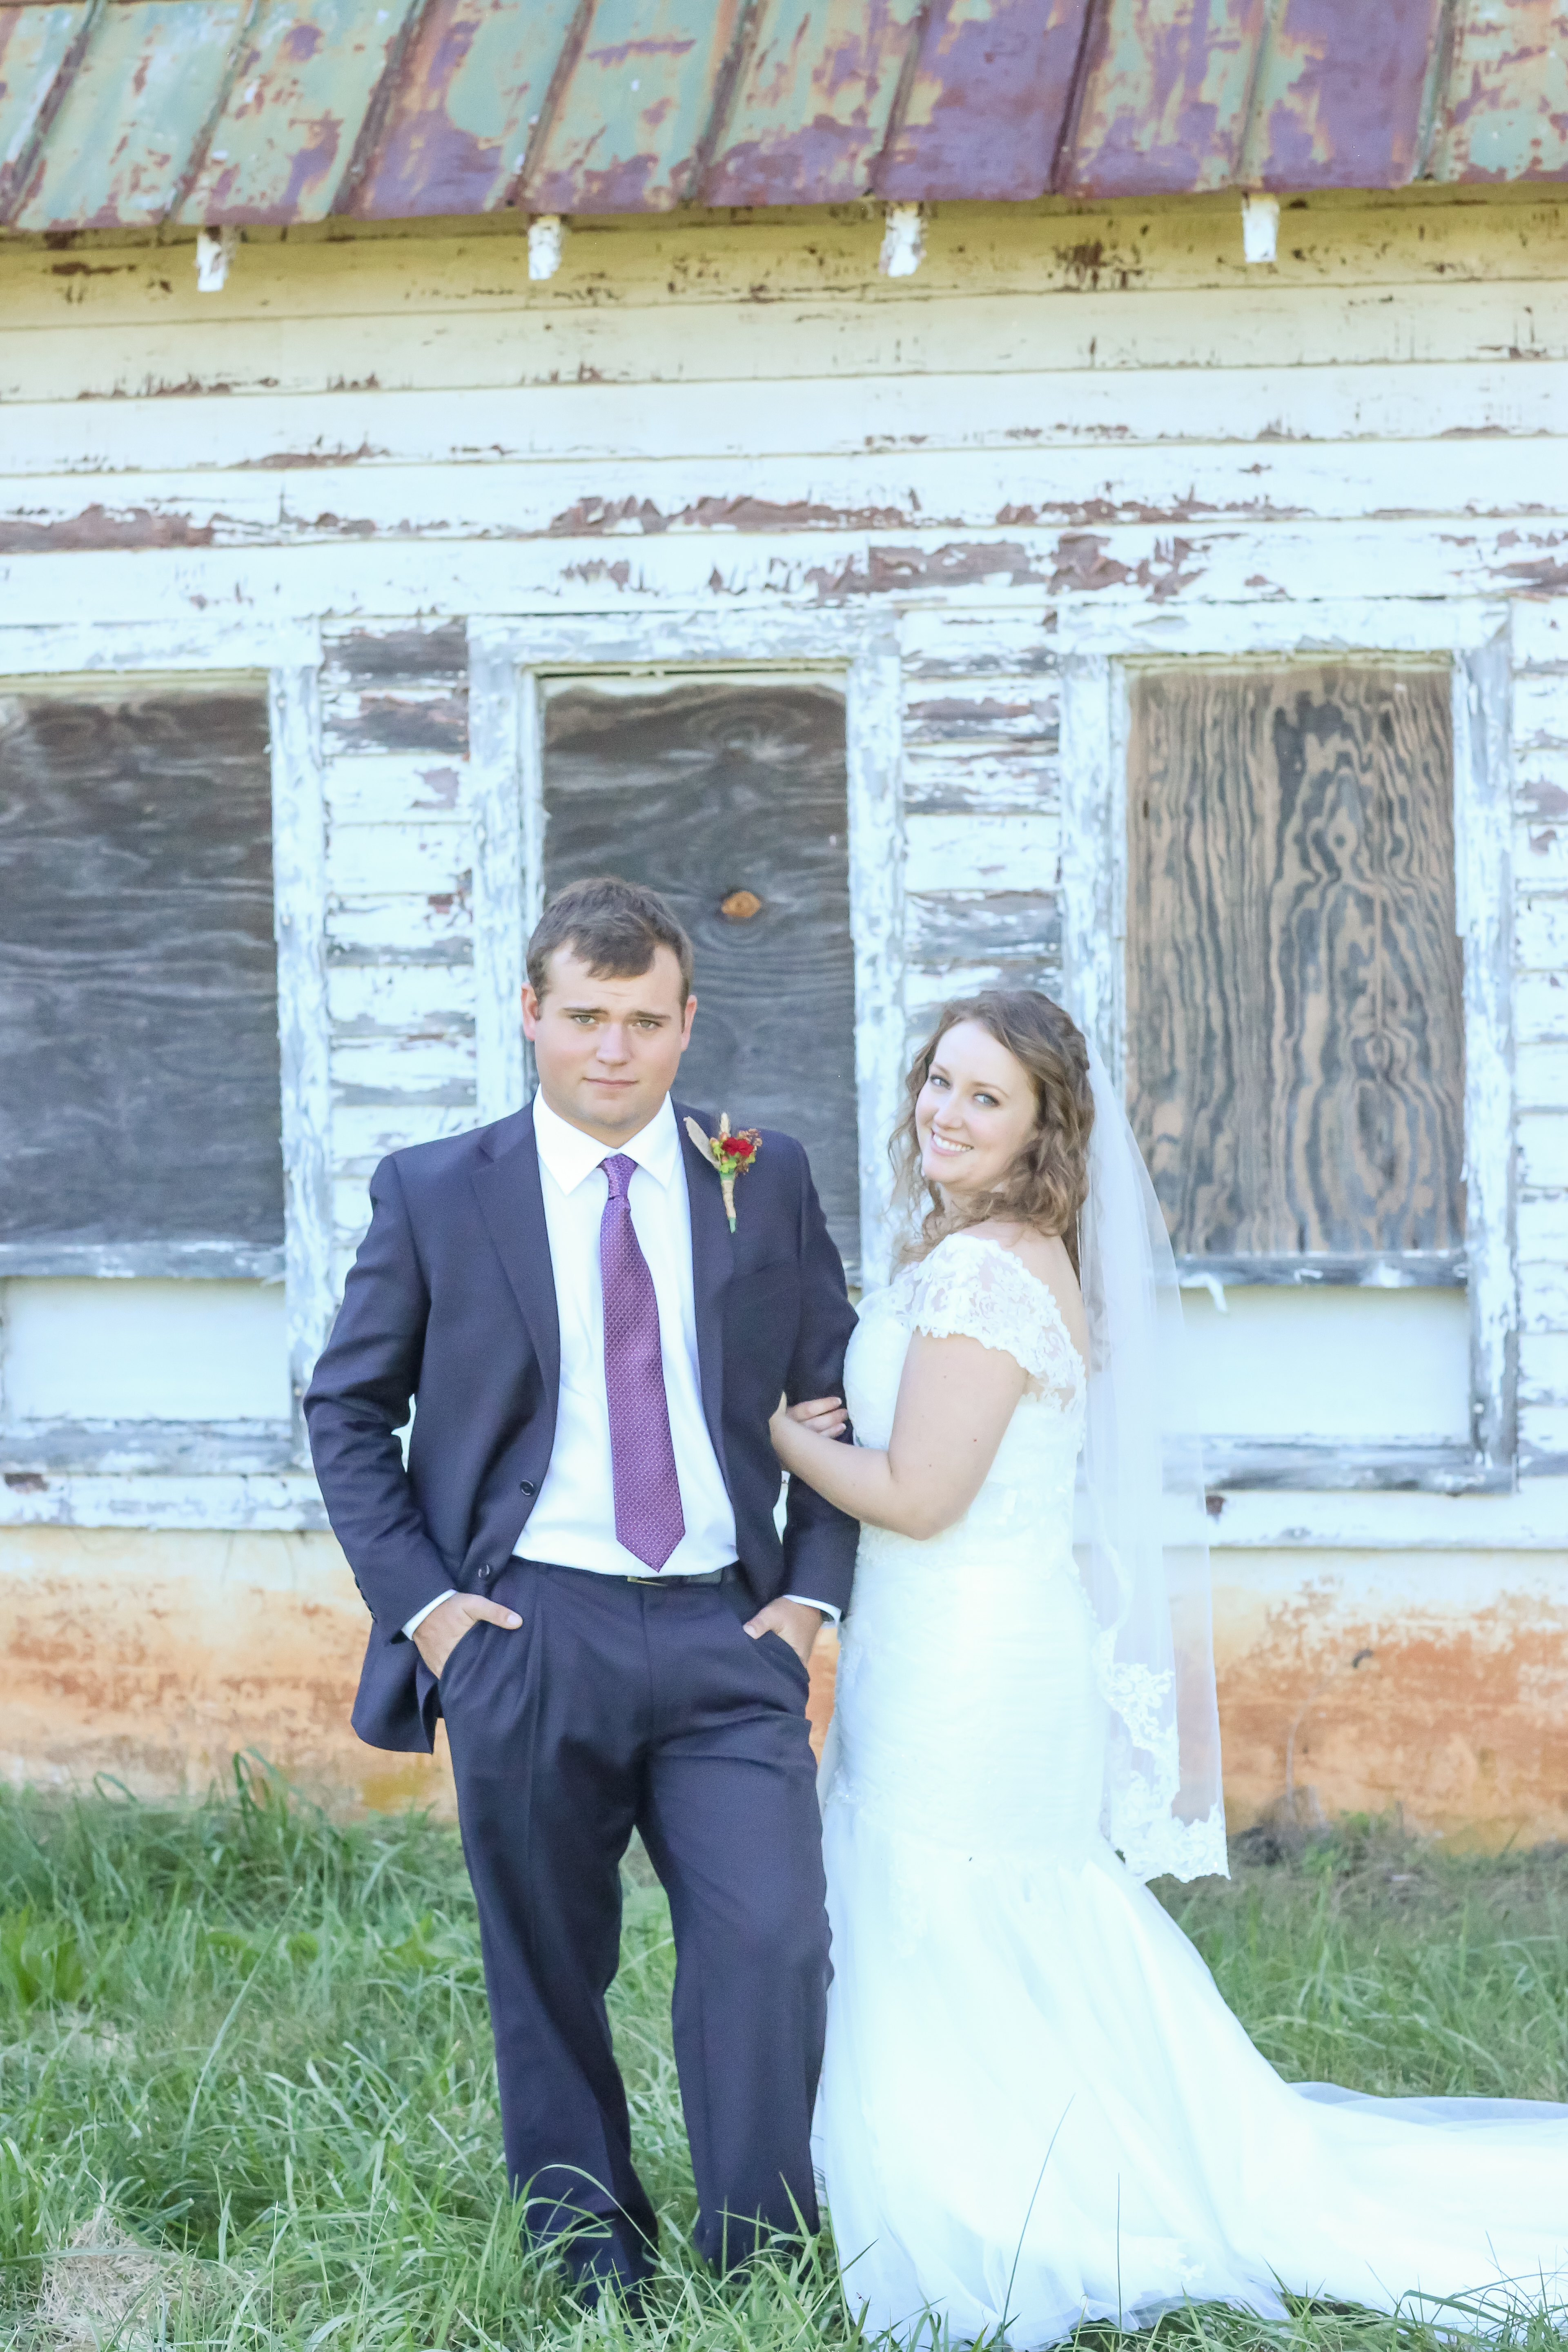 powhatan-virginia-wedding-photographer-photography-heather-michelle-photography-88-of-163